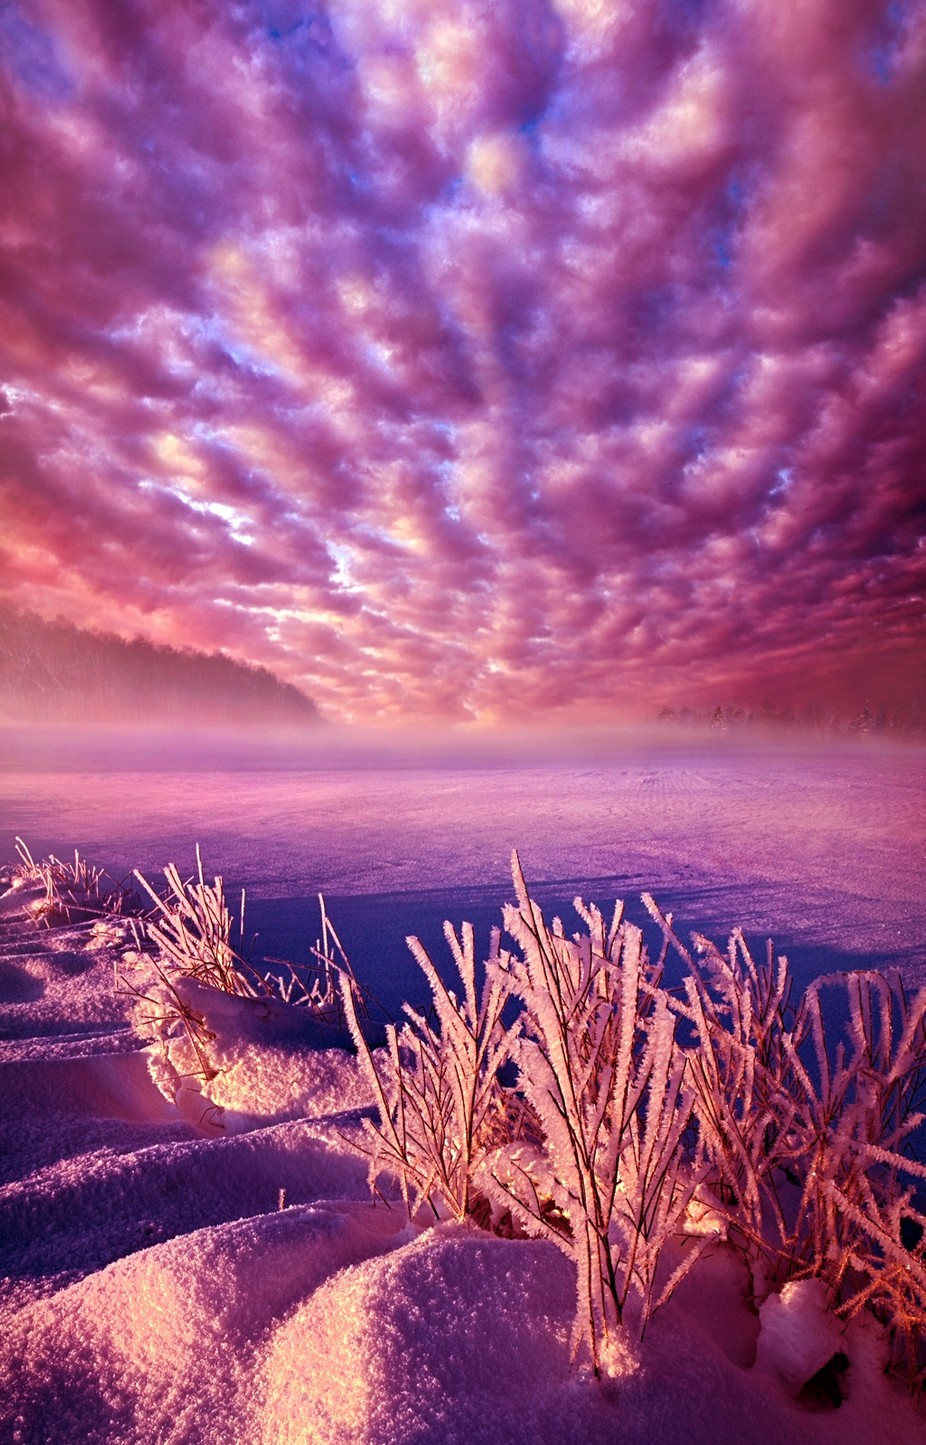 Lost Within by phil1 - Pastel Colors Photo Contest